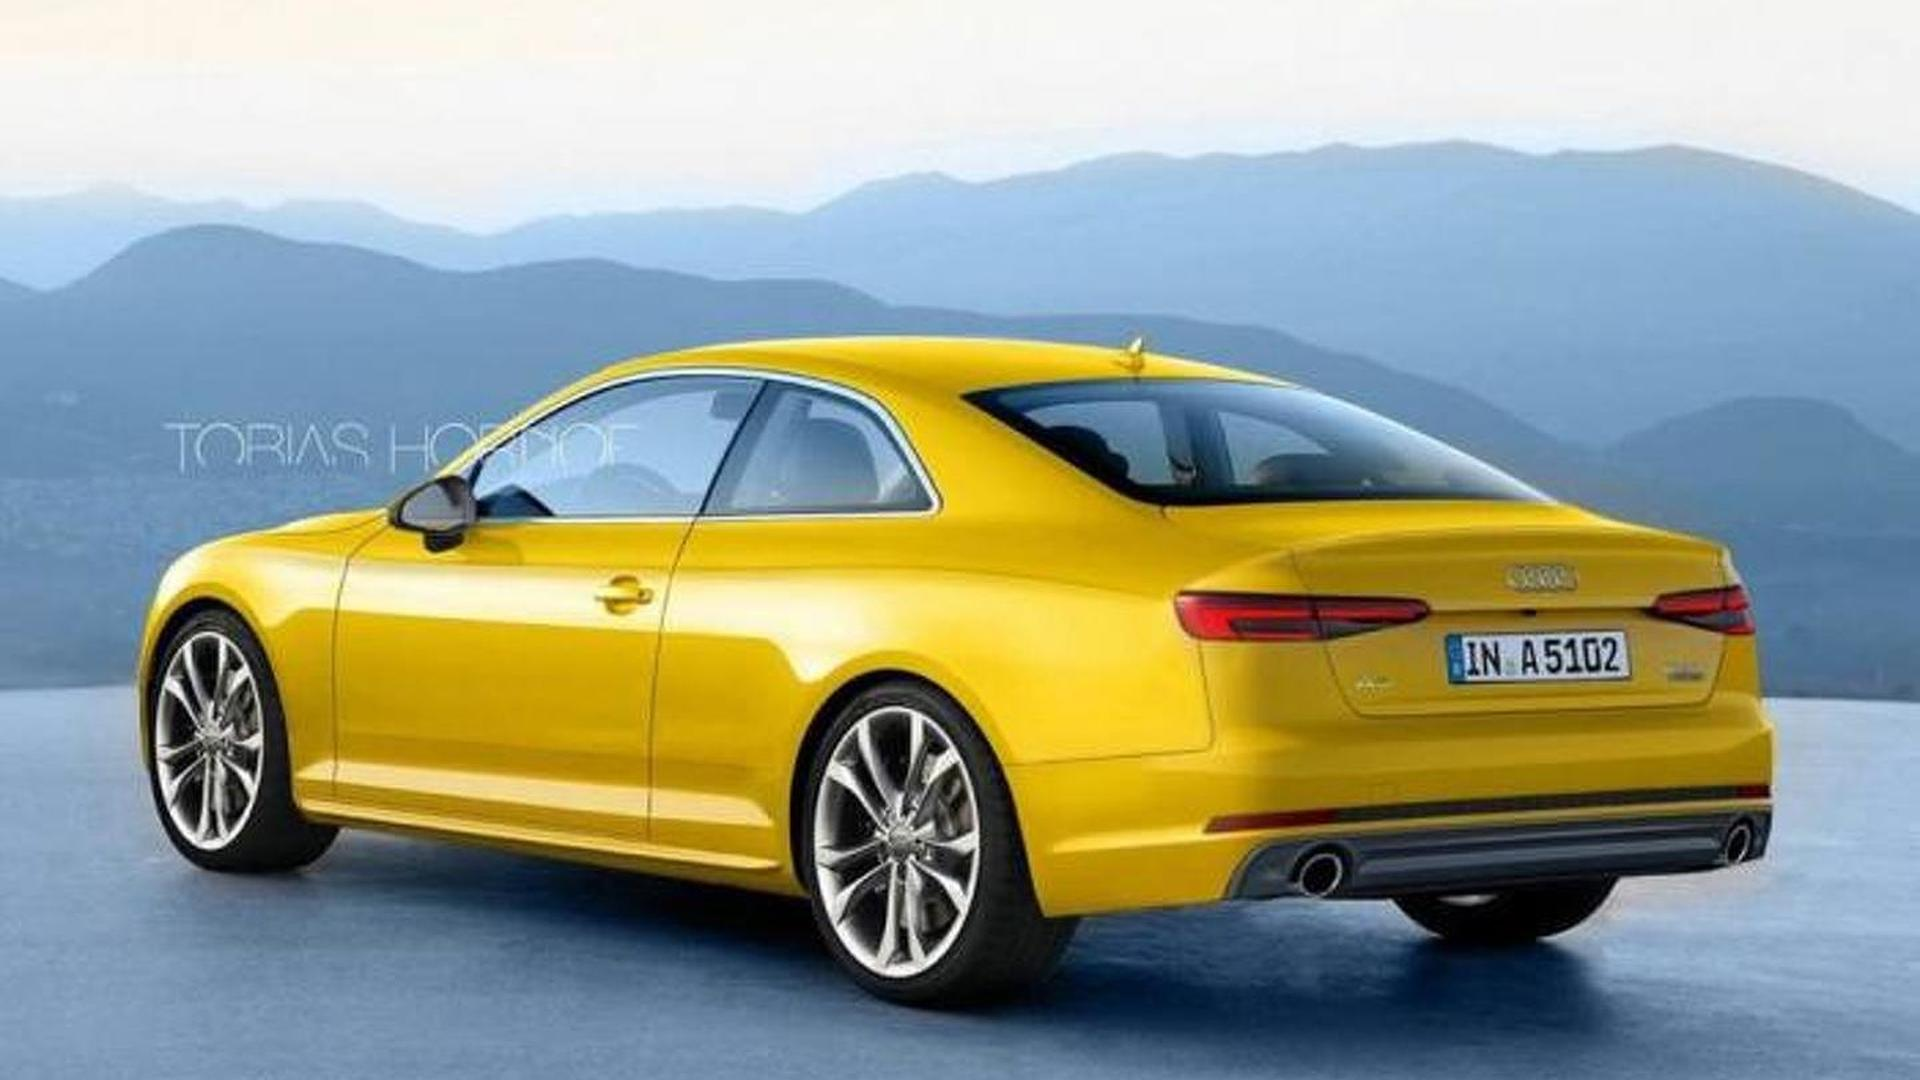 Next generation Audi A5 Coupe render shows what to expect